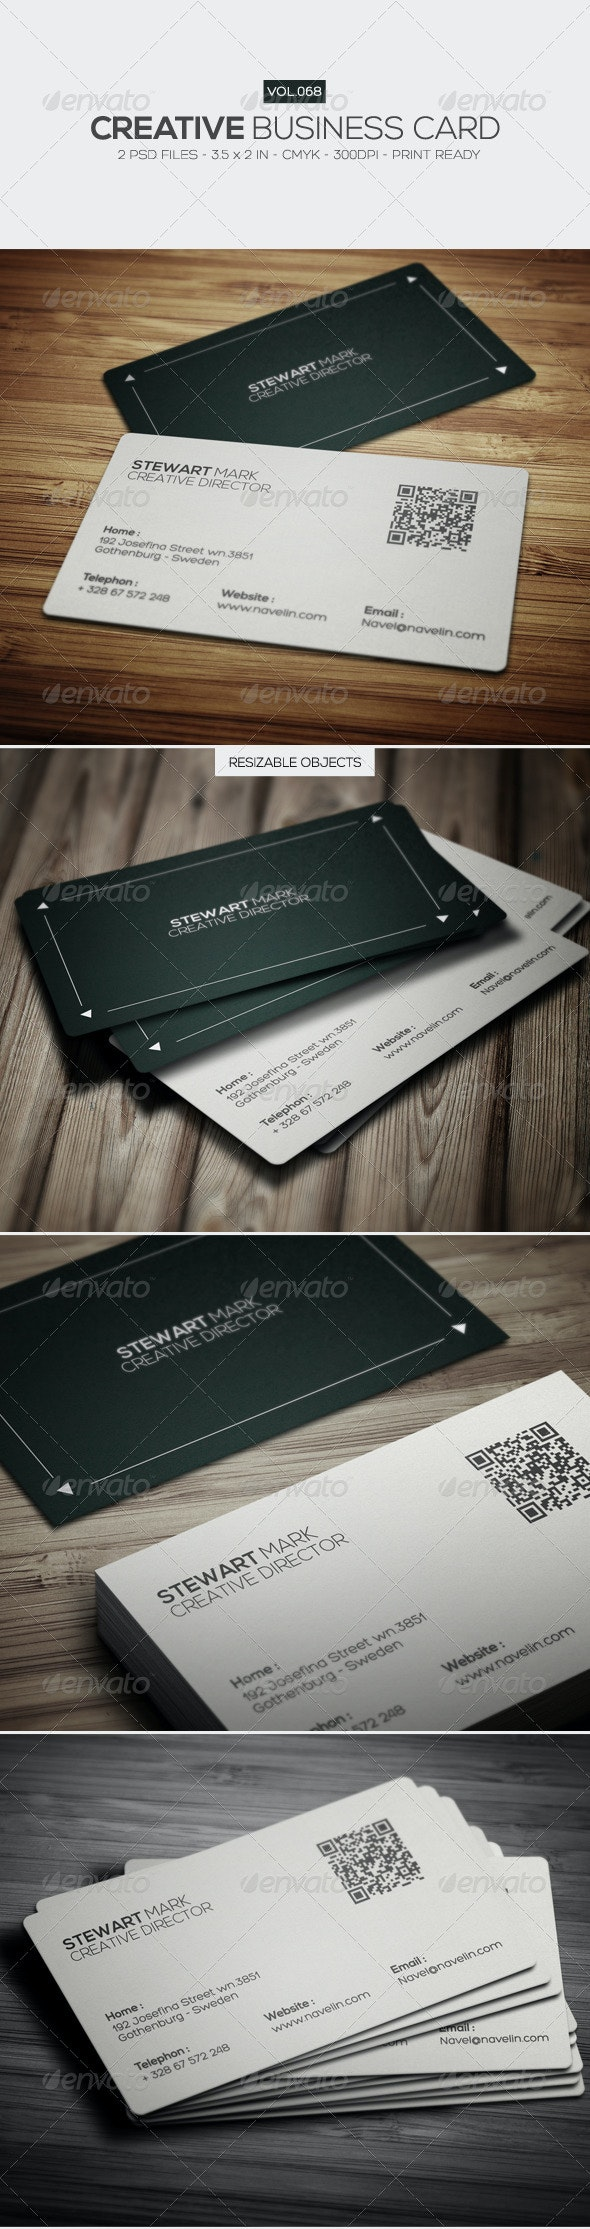 Creative Business Card 068 - Creative Business Cards